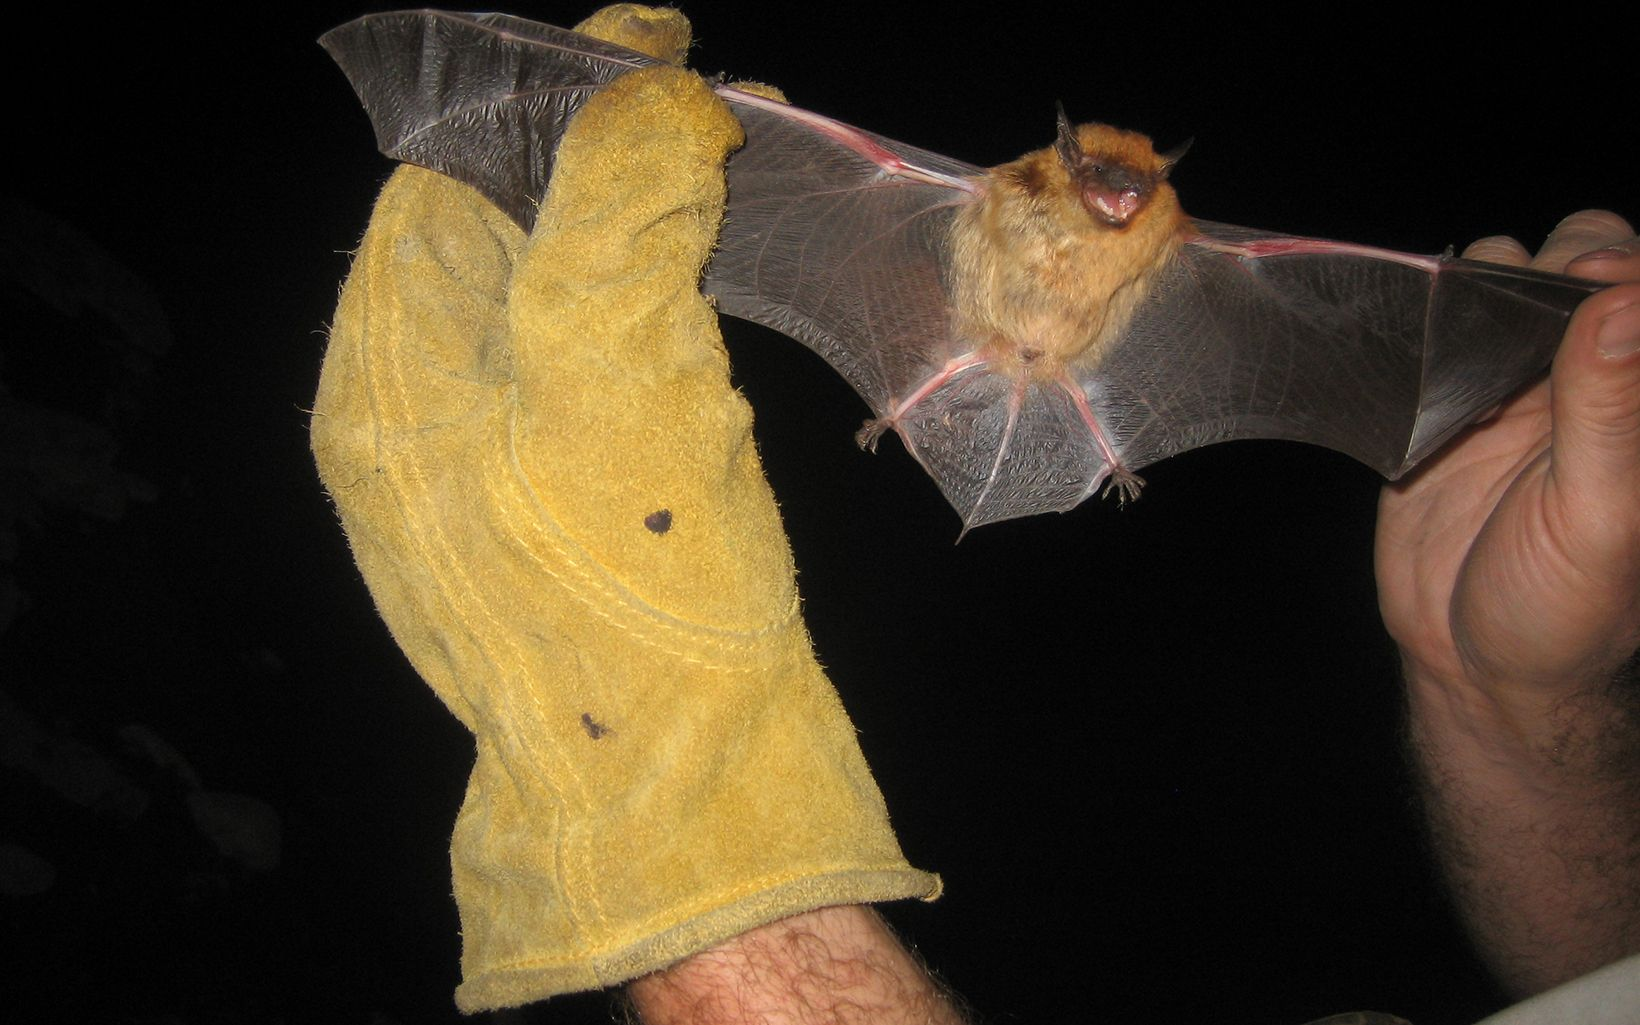 Bat held by its wings by a yellow gloved hand.